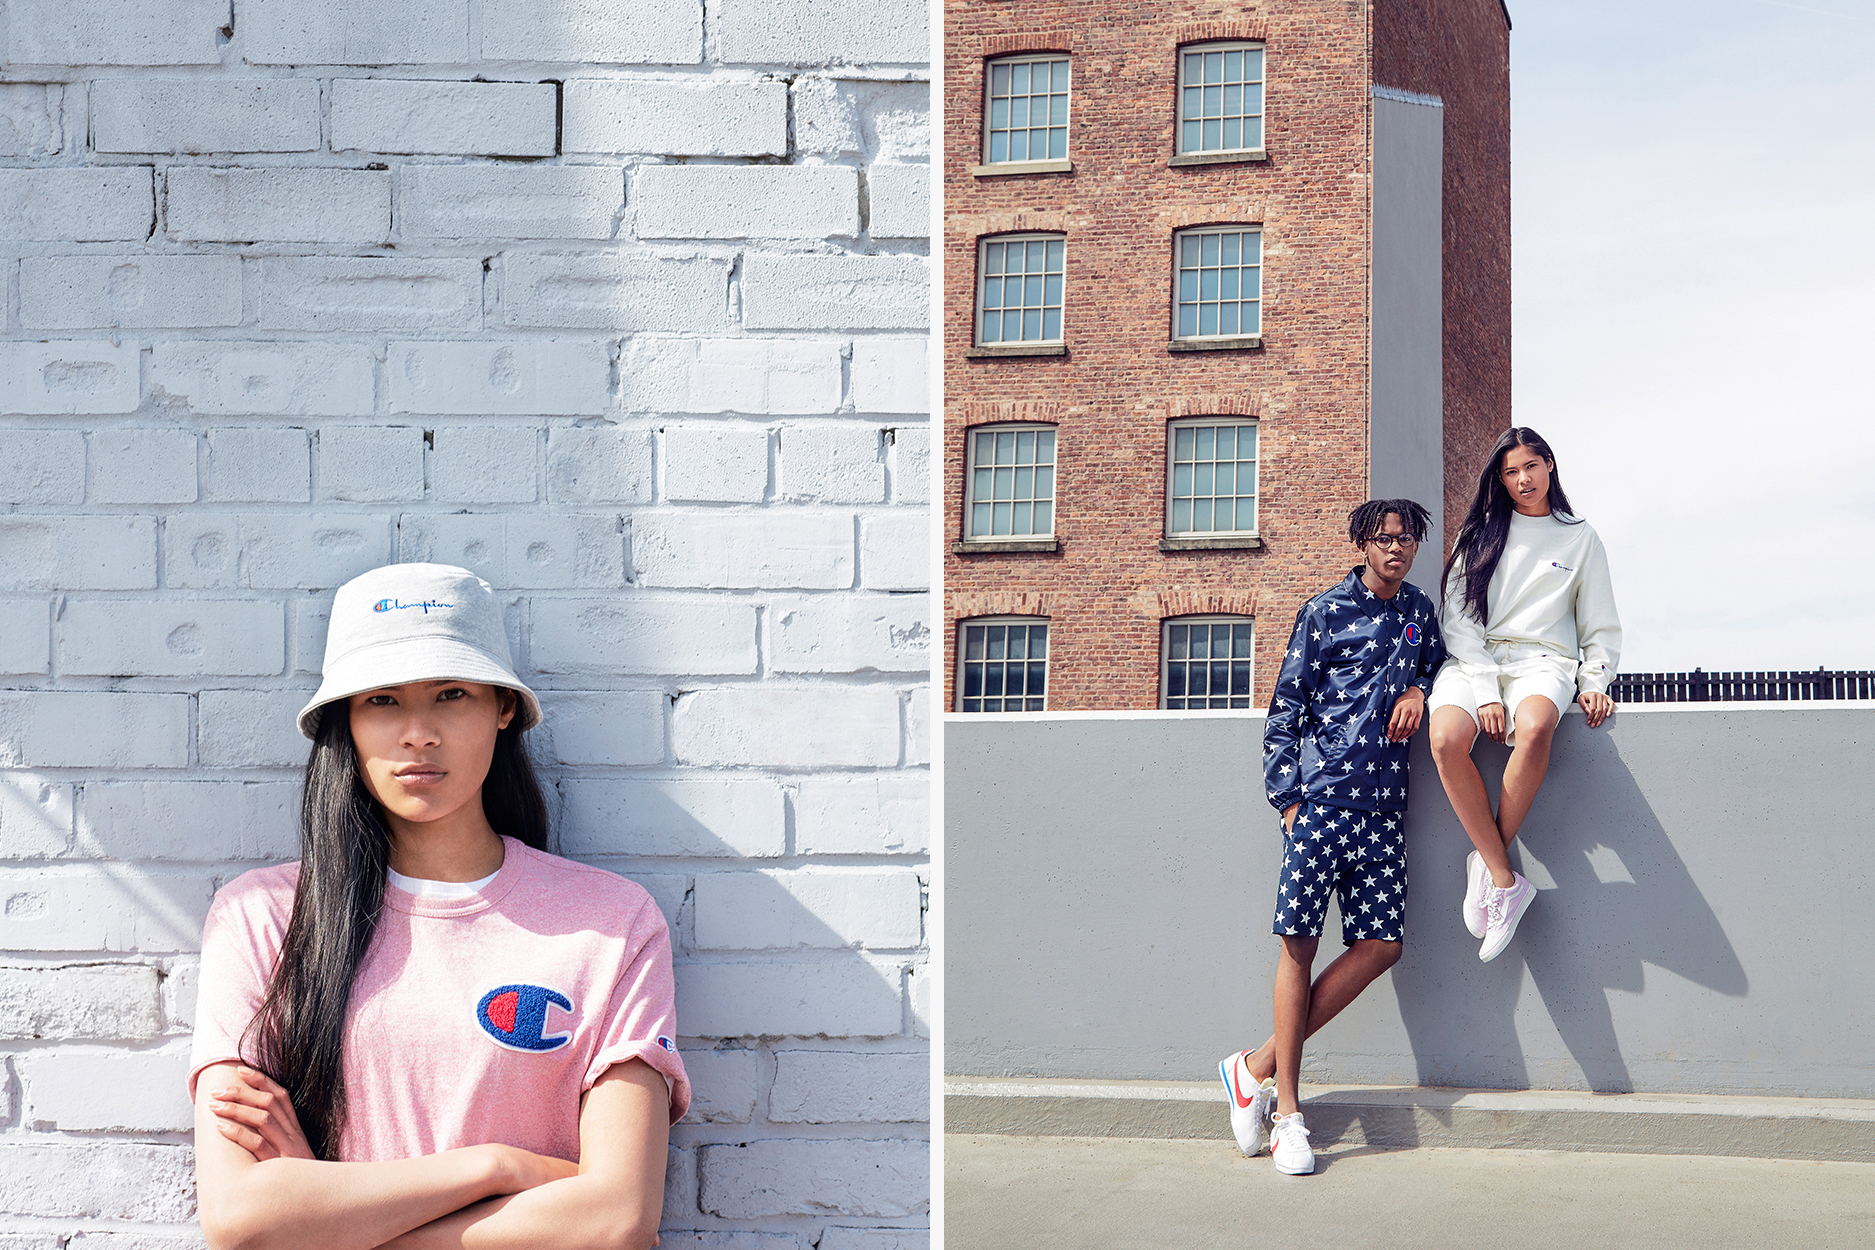 Champion Spring/Summer '16 Collection